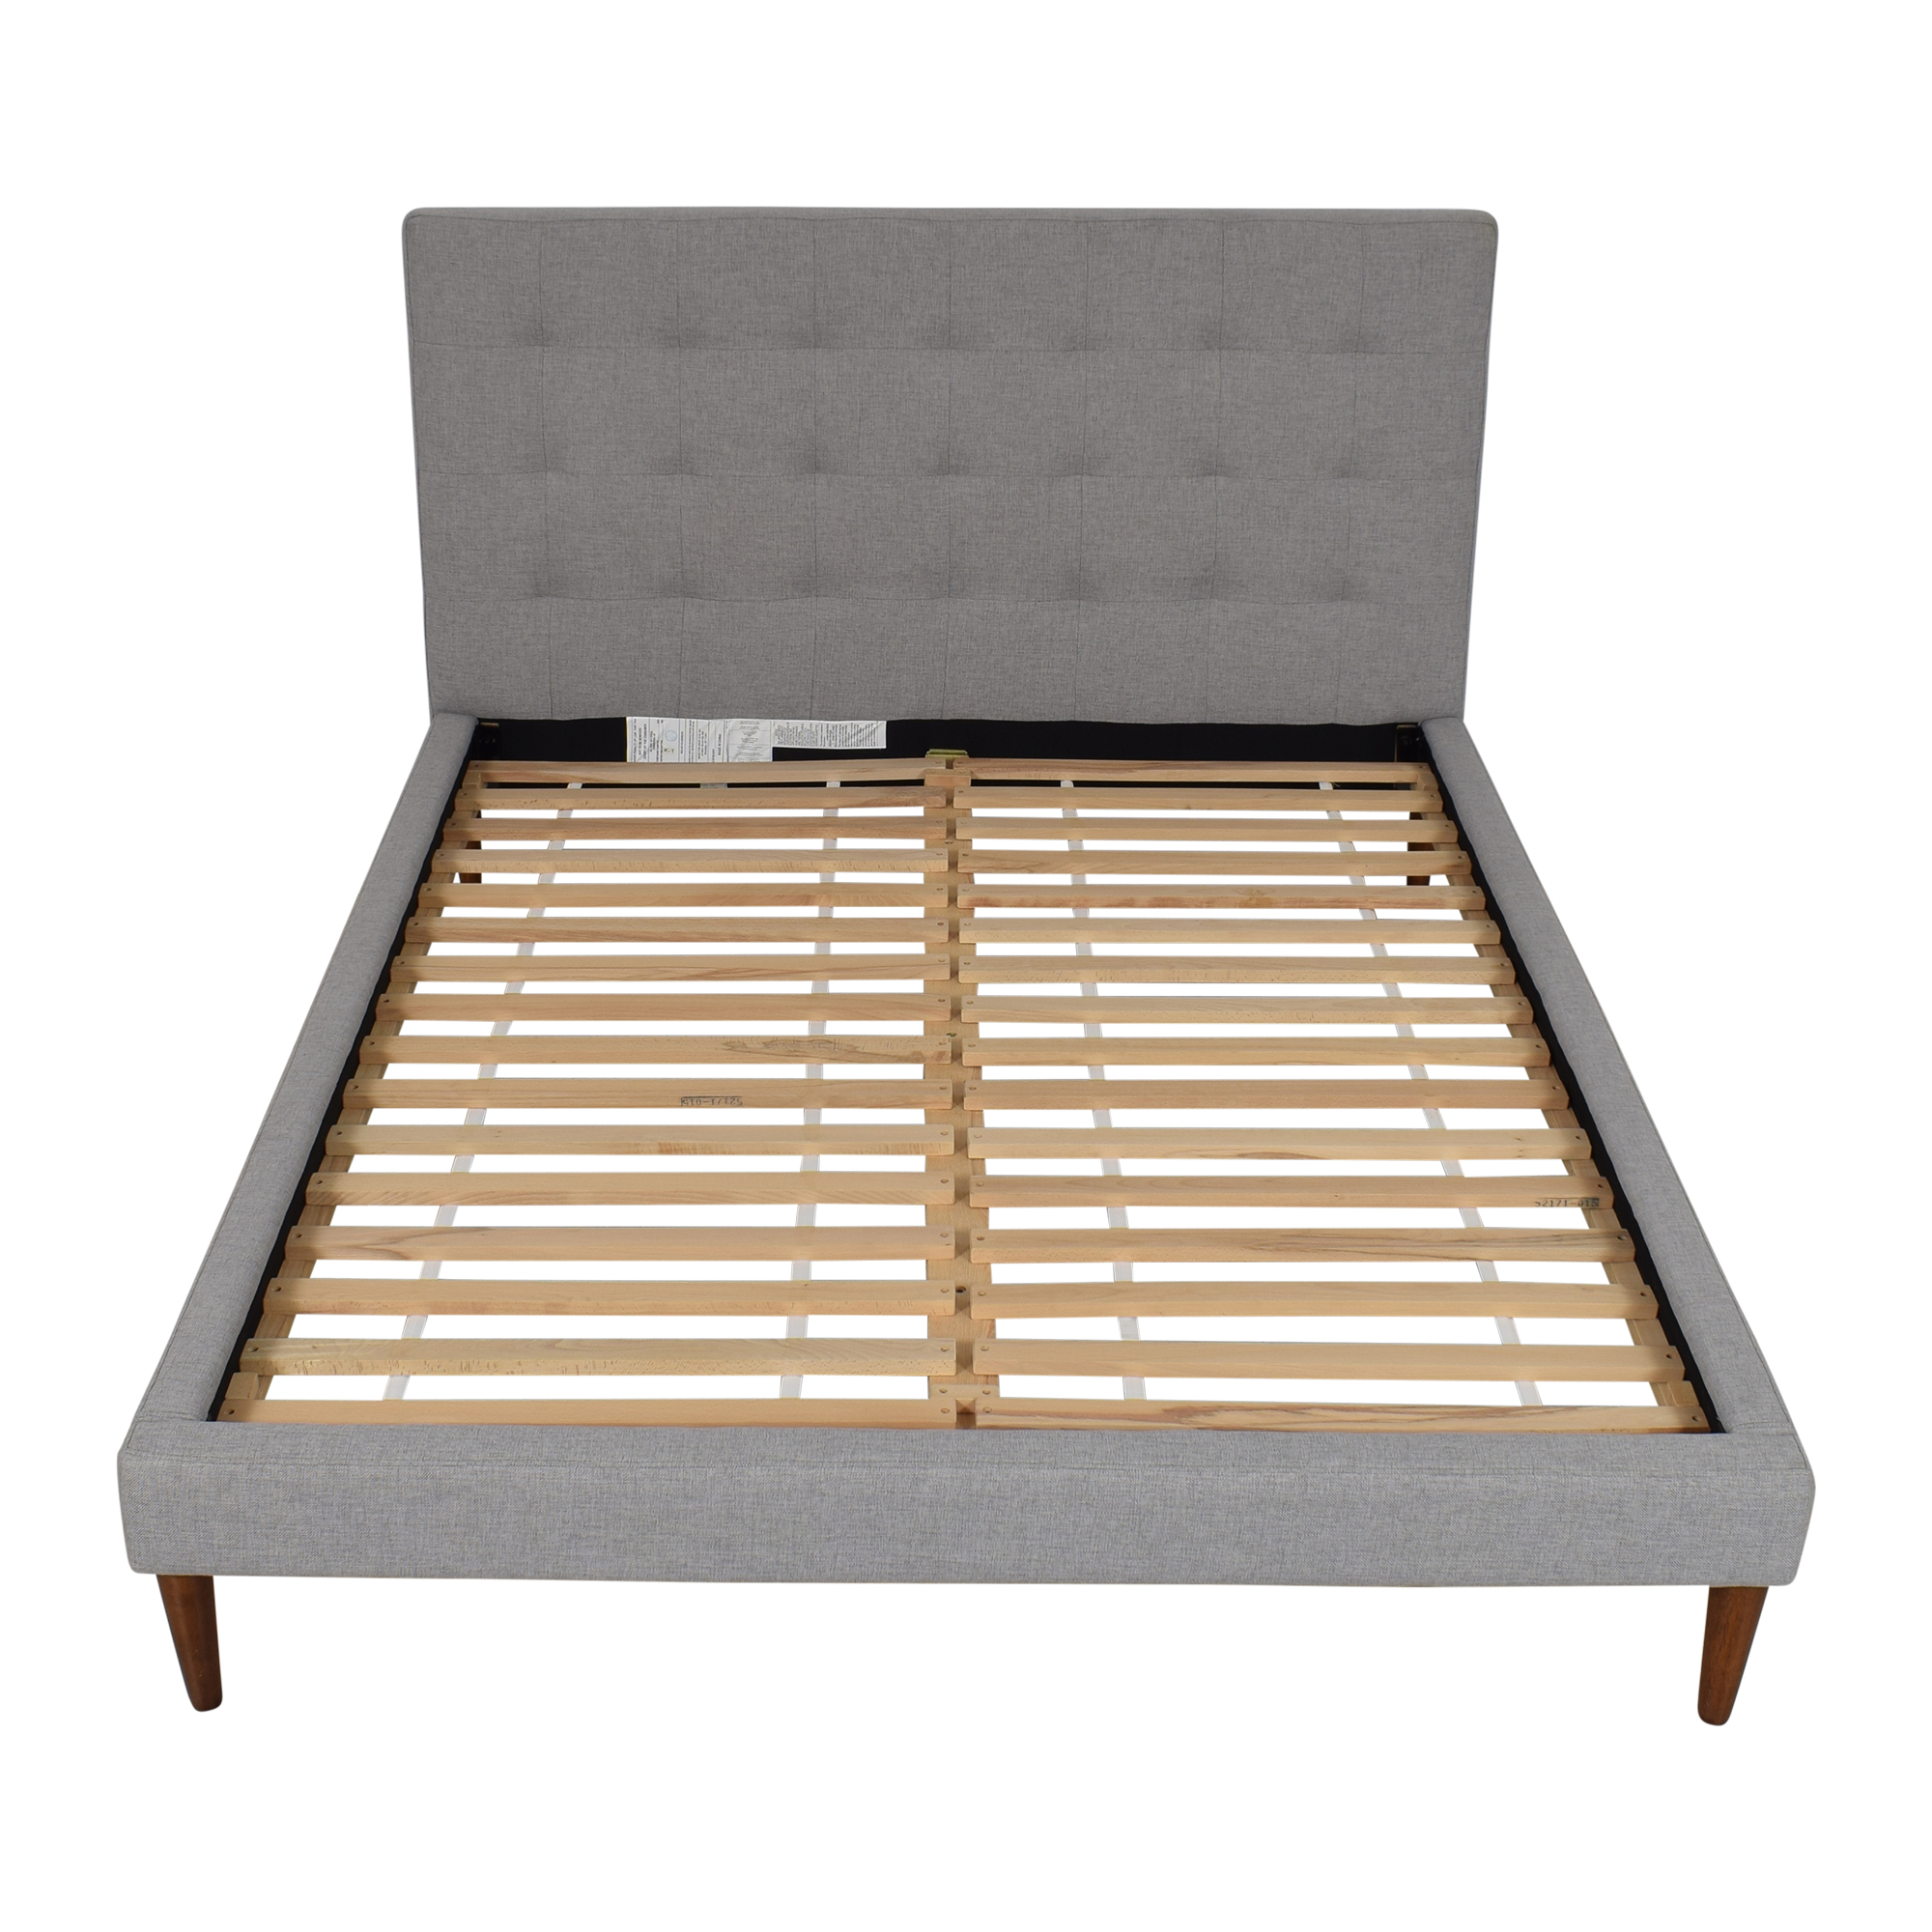 West Elm West Elm Grid-Tufted Tapered Leg Queen Bed coupon